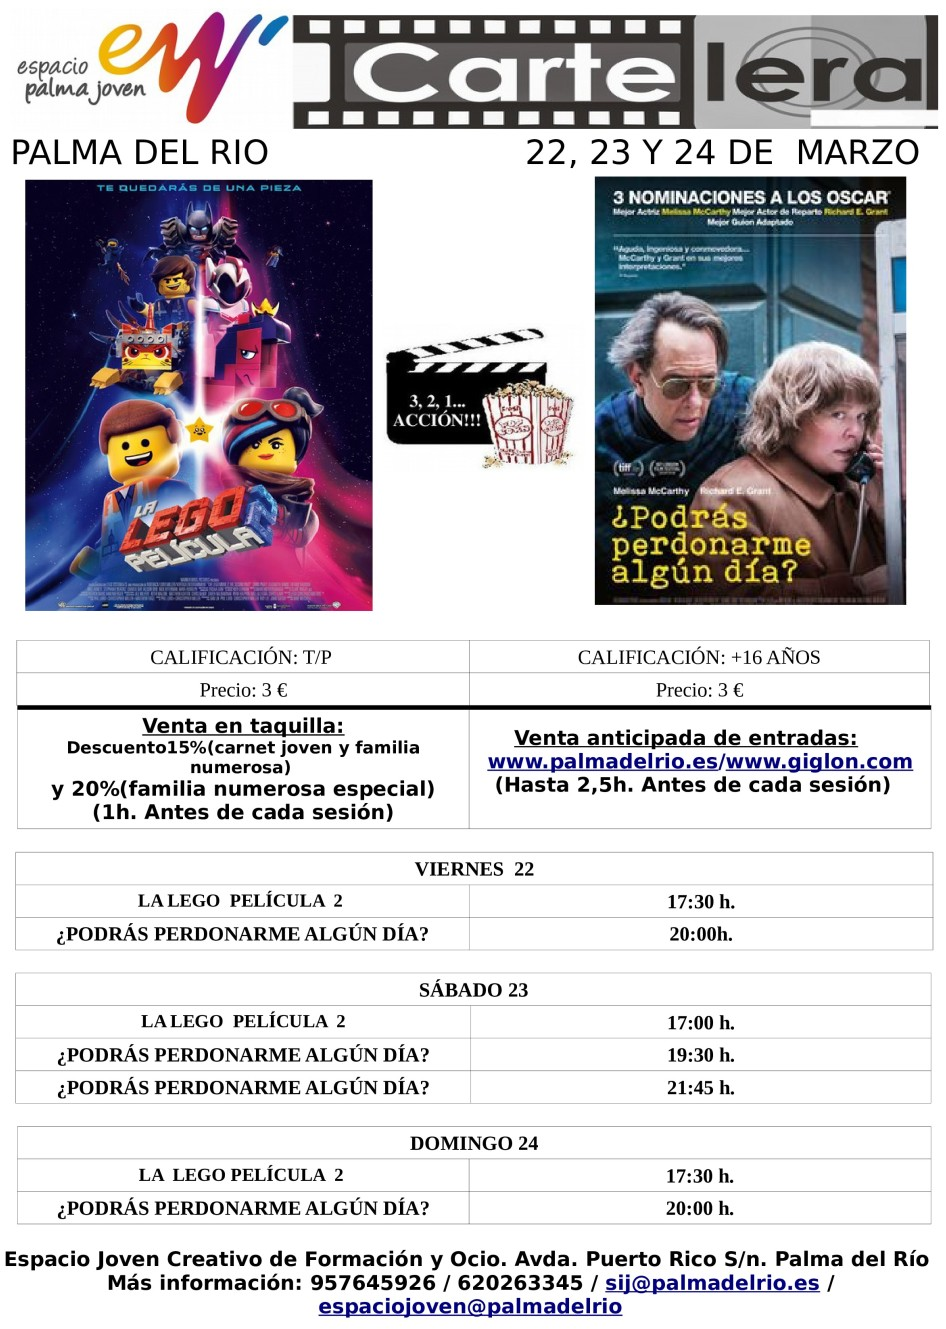 https://www.palmadelrio.es/sites/default/files/cine_22.23.24_marzo_2019.jpg